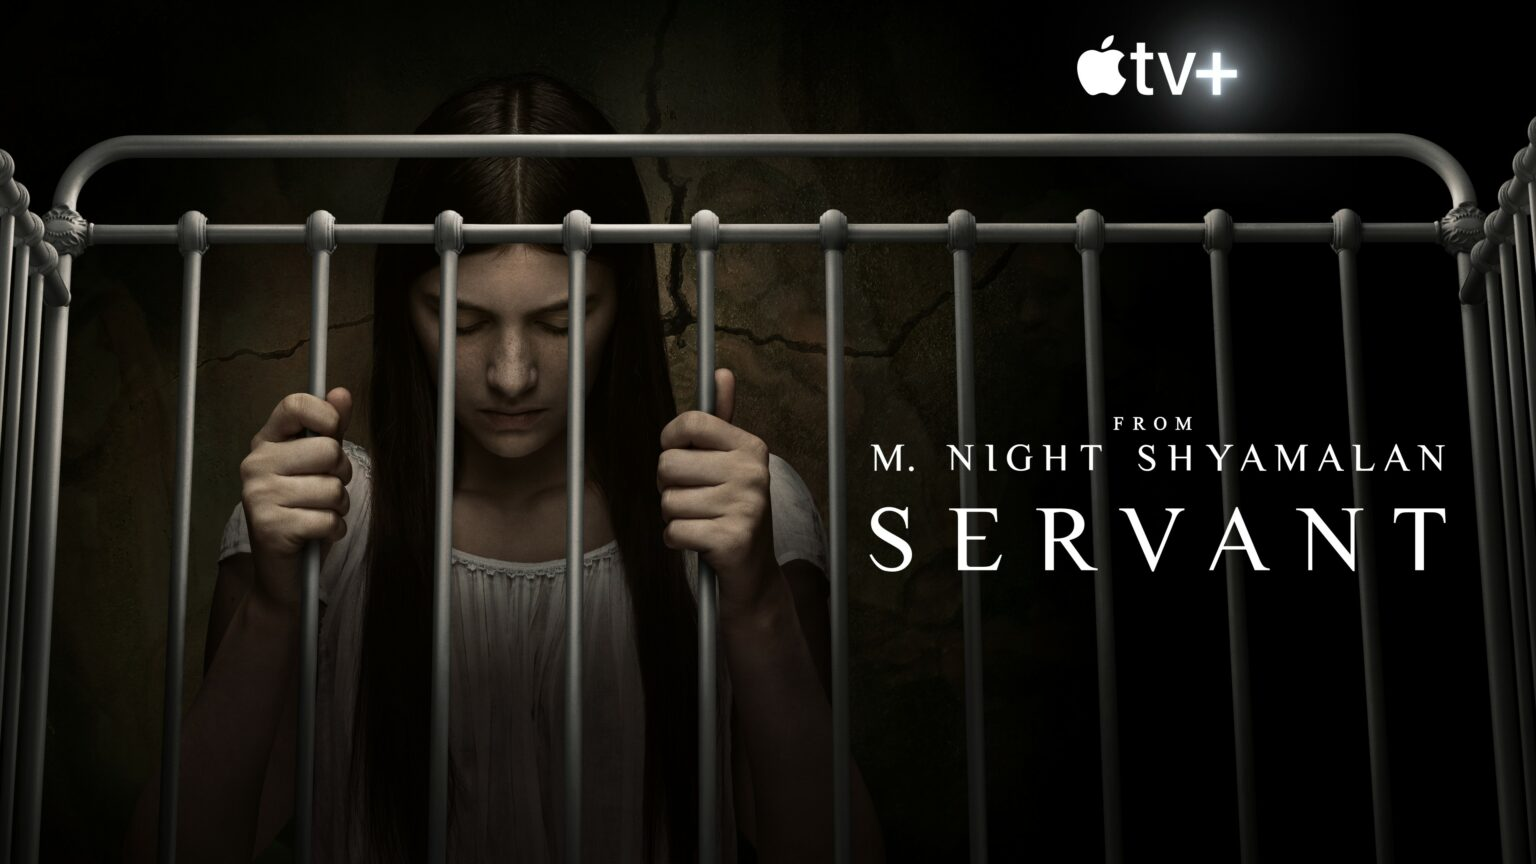 Apple TV+ show Servant returns Jan. 15 for a wonderfully mean second season.